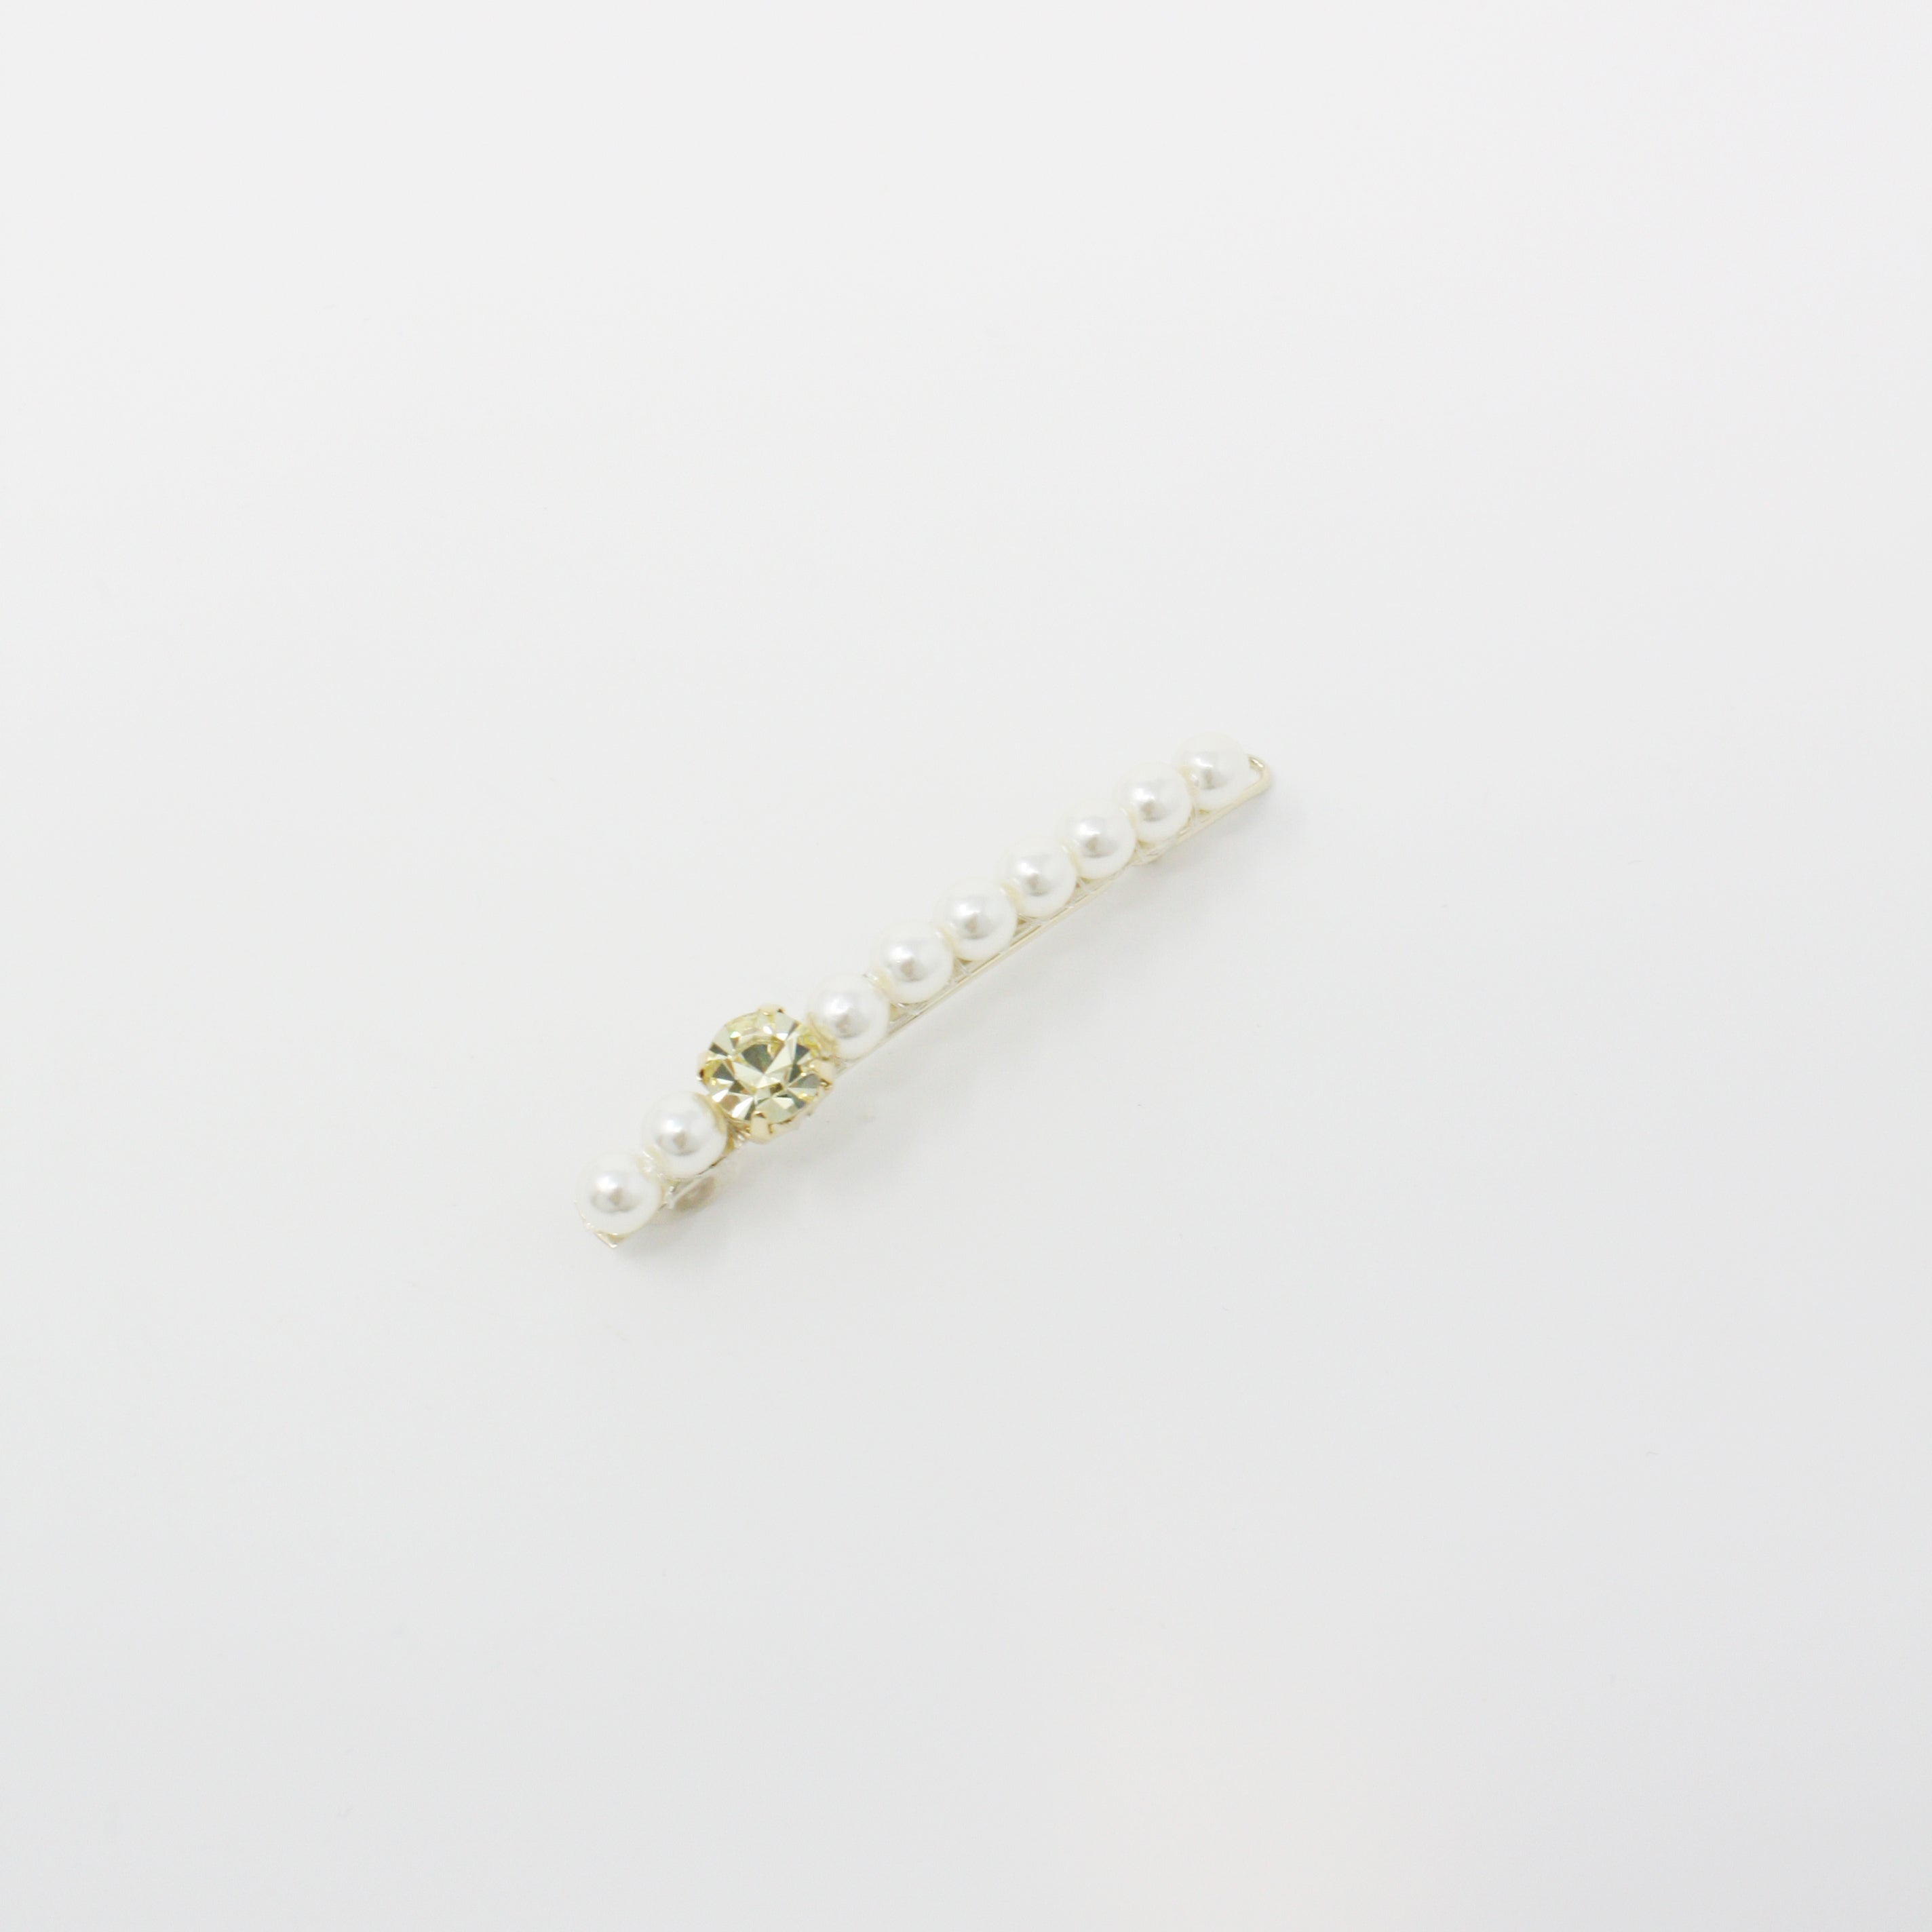 LFSL0250 - Pearl Lined Clip with Yellow Crystal Point